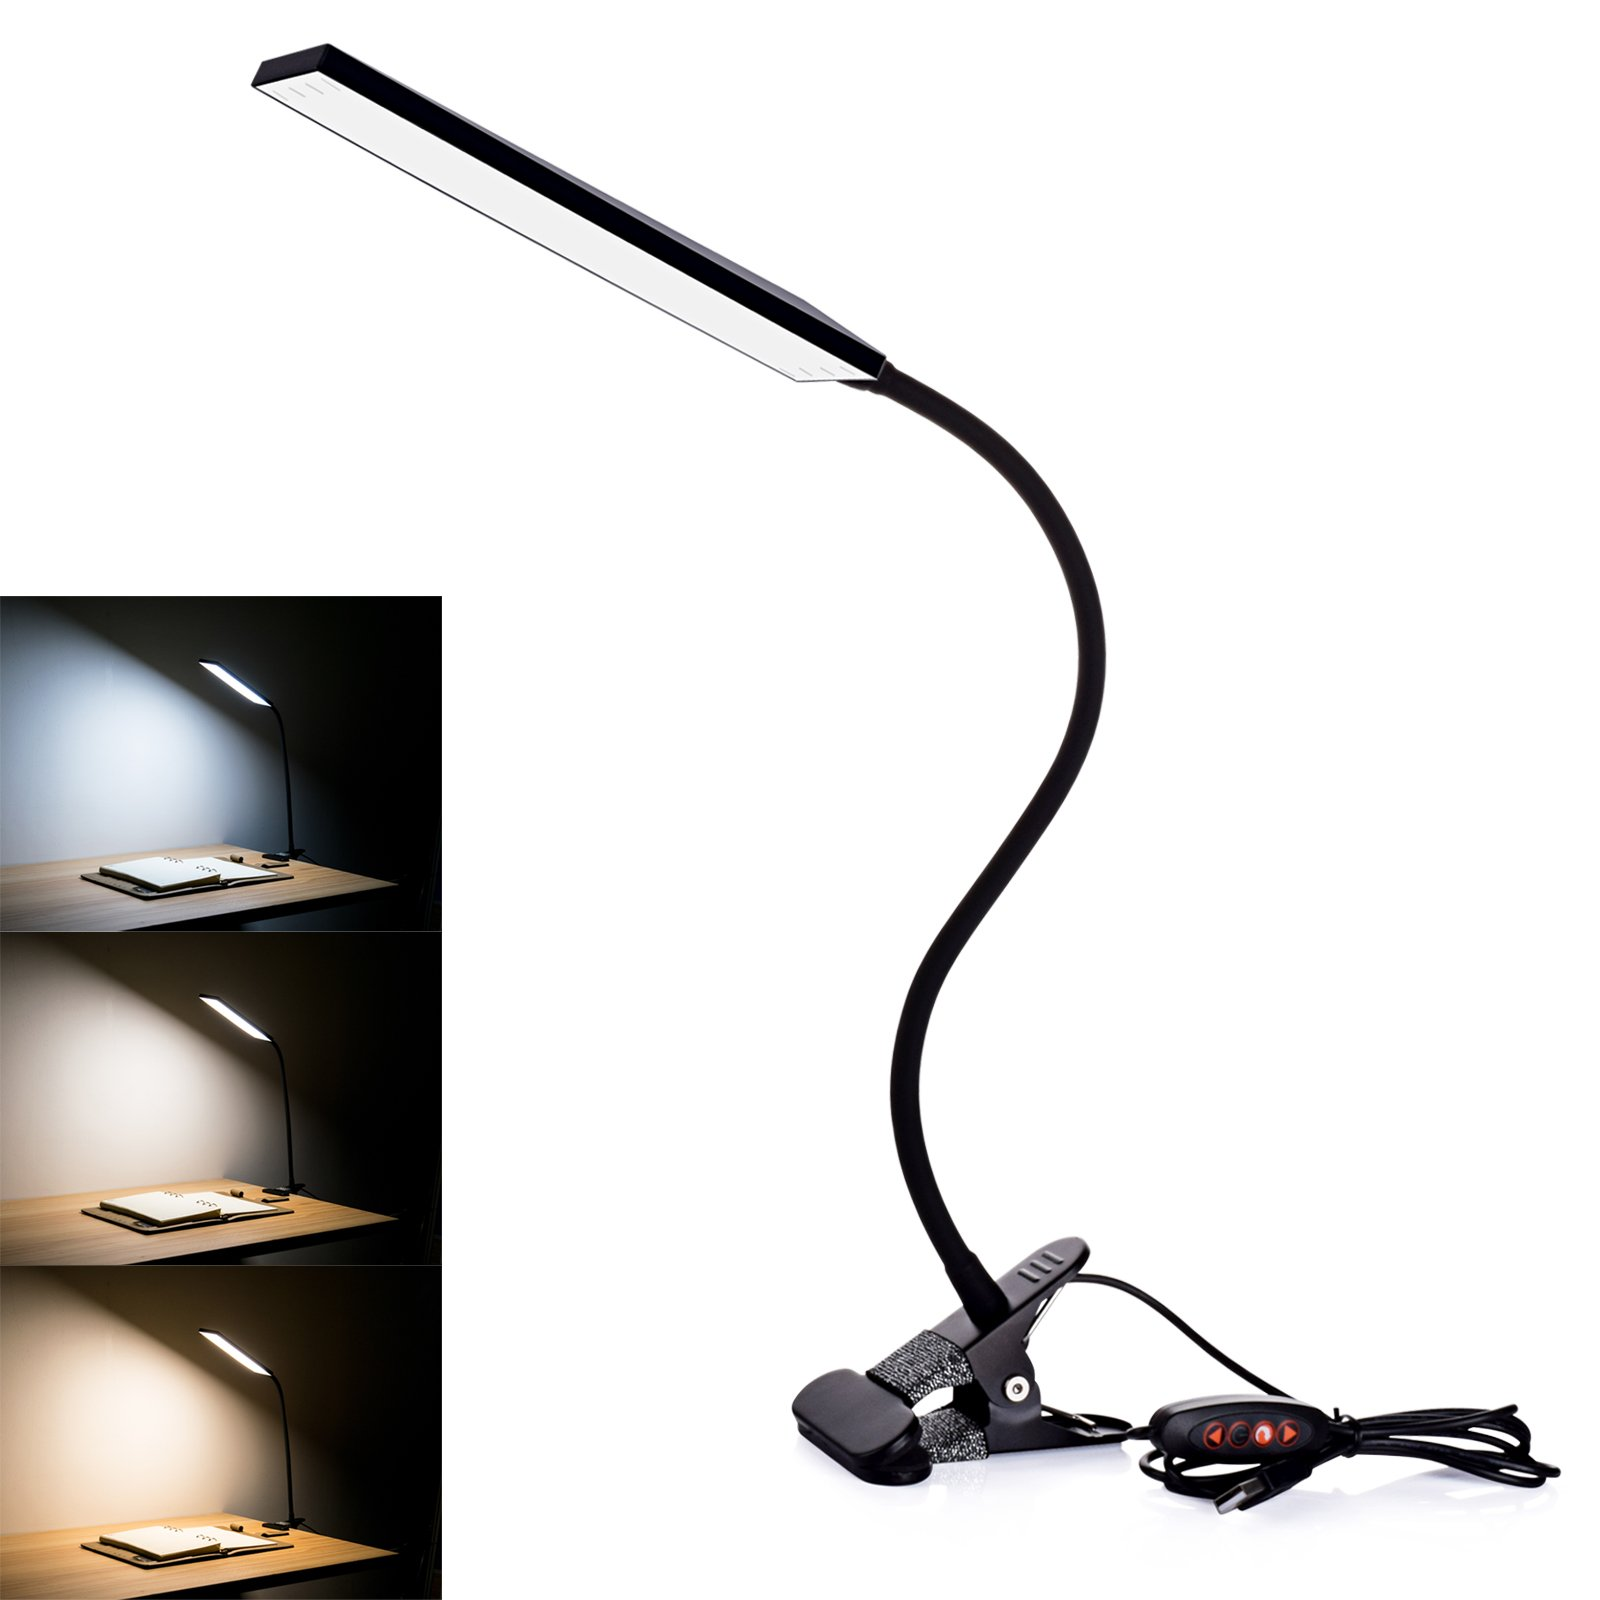 LED Desk Lamp, RAOYI Eye-Care Dimmable Flexible Gooseneck USB Table Lamp, 3 Color Temperatures, 14 Brightness Levels Clip Reading Lamp for Studying, Working, Black by RAOYI (Image #6)